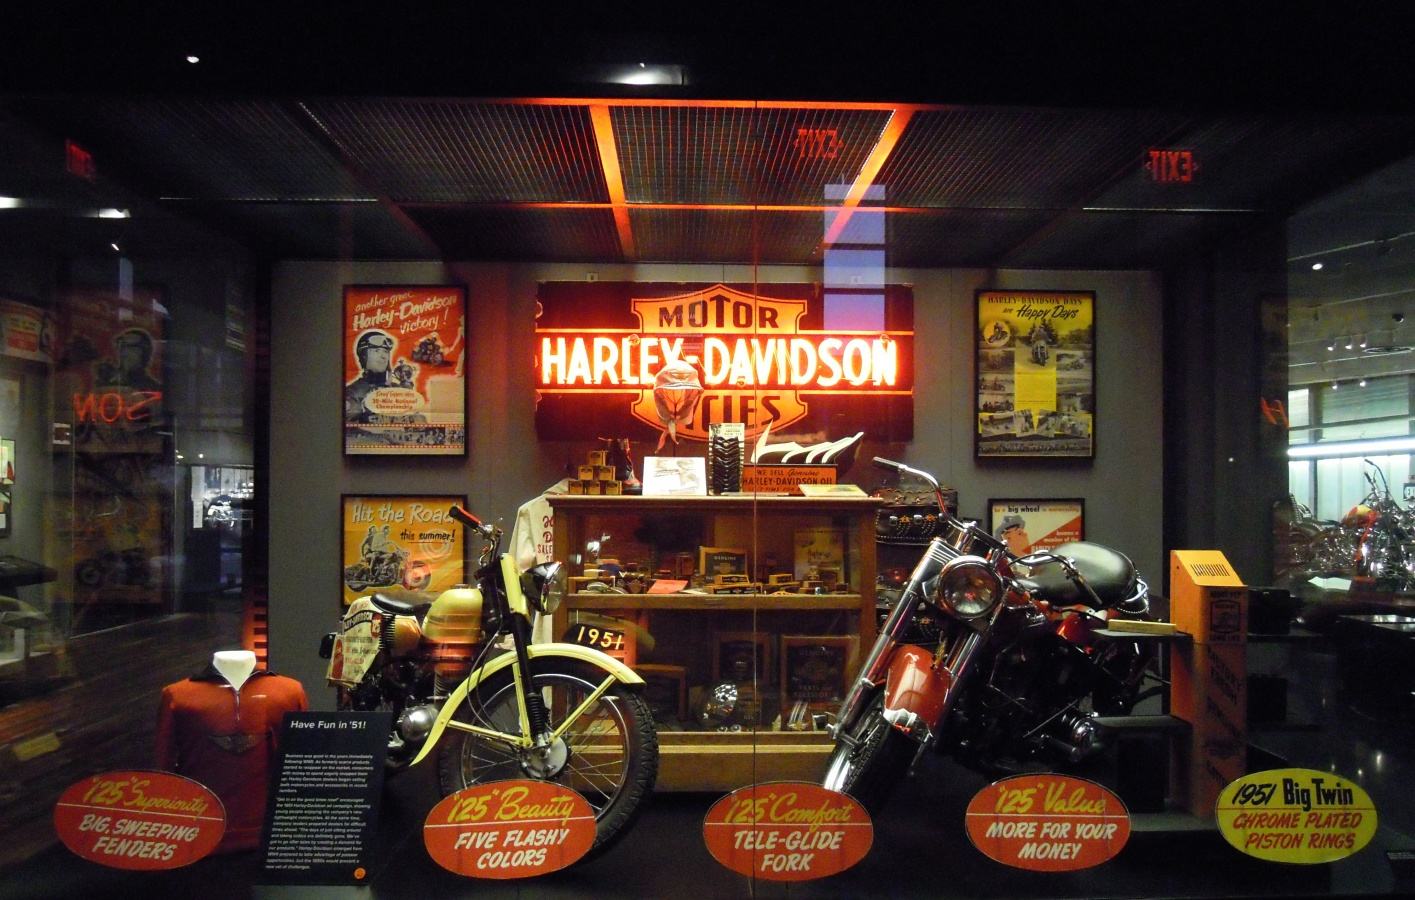 Harley davidson museum factory milwaukee wi usa india for Motor harley davidson museum